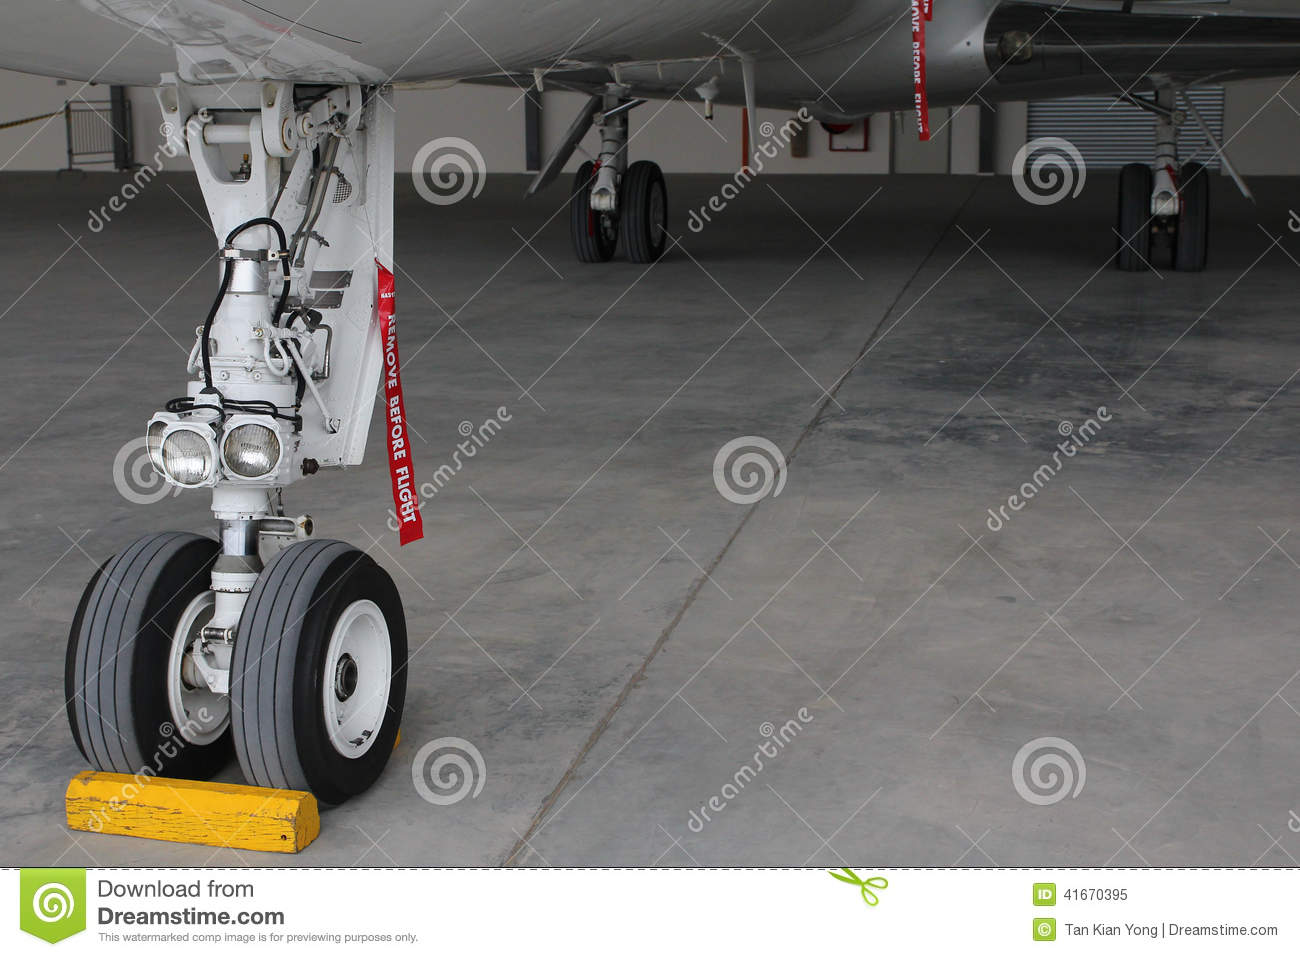 Landing gear of aircraft